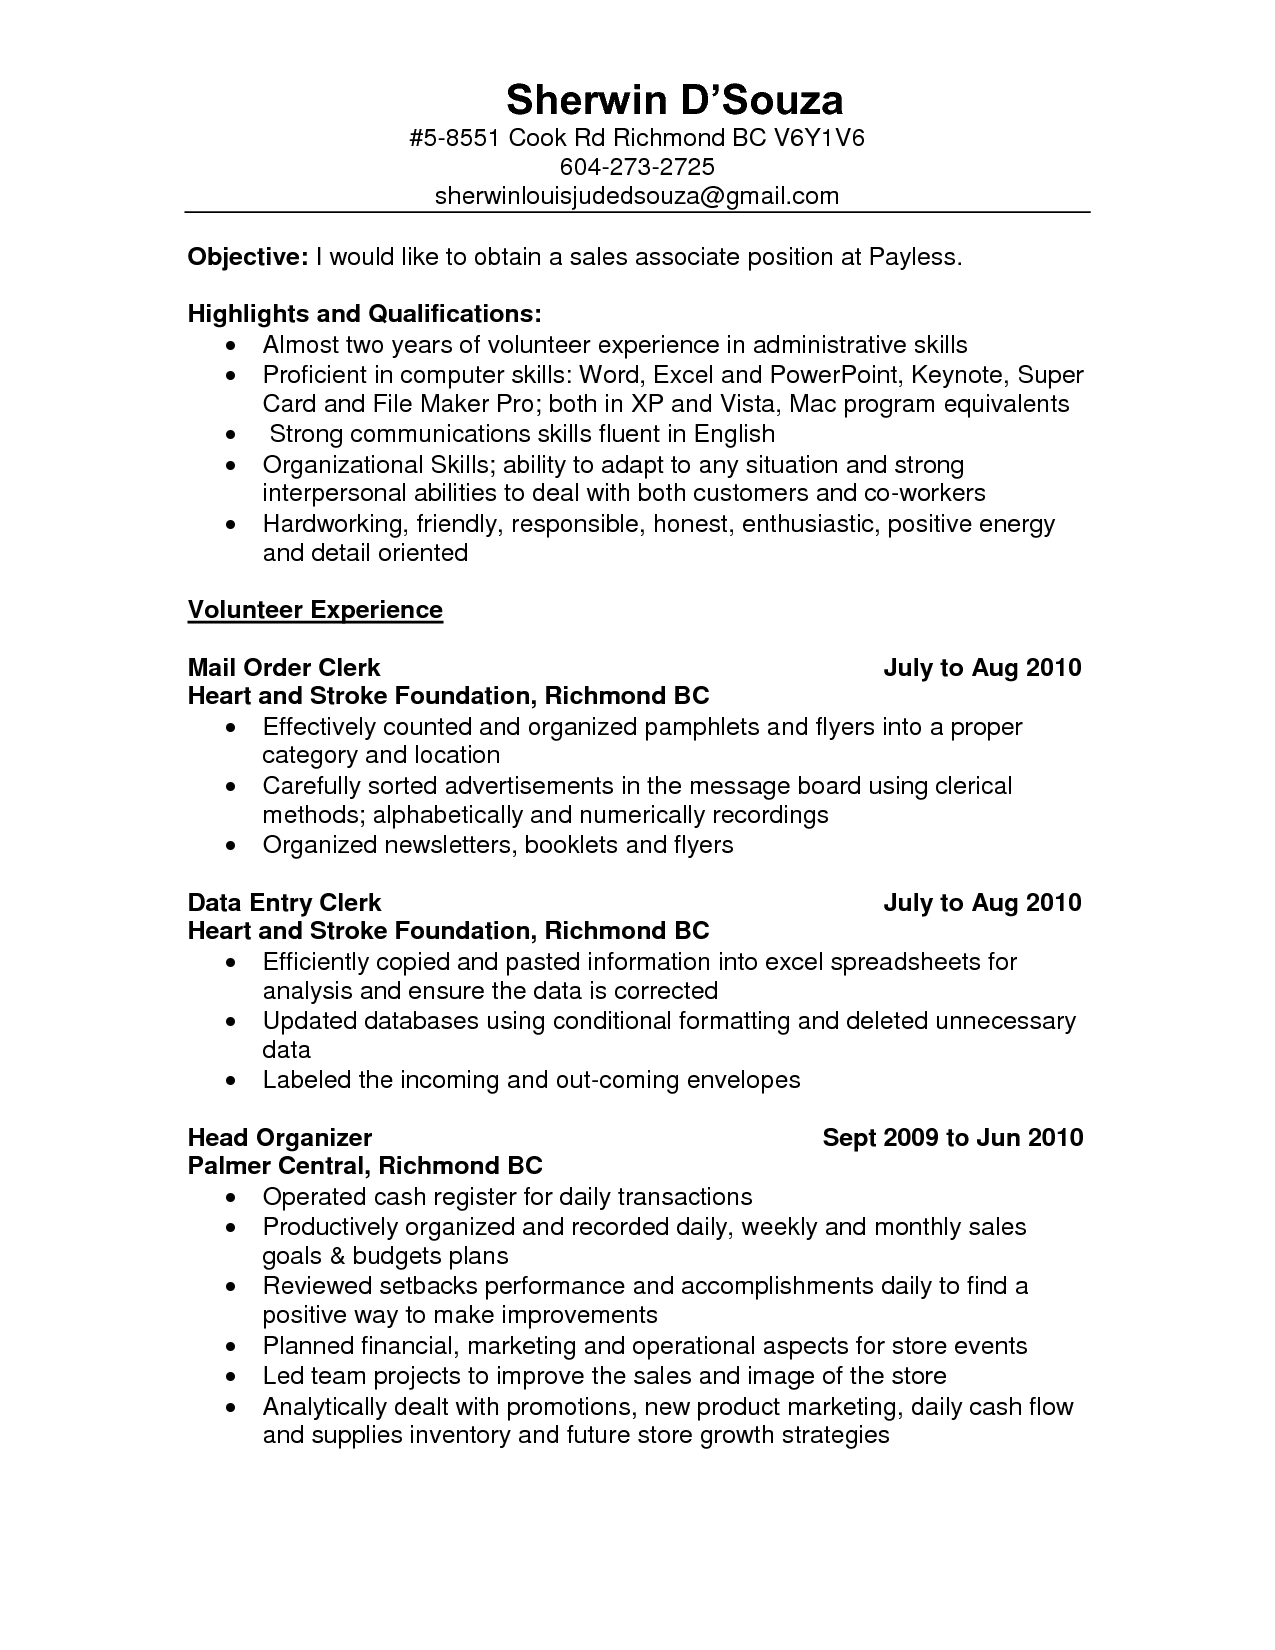 Legal Resume Examples Legal Resume Law Clerk Cover Letter Sample  Home Design Idea